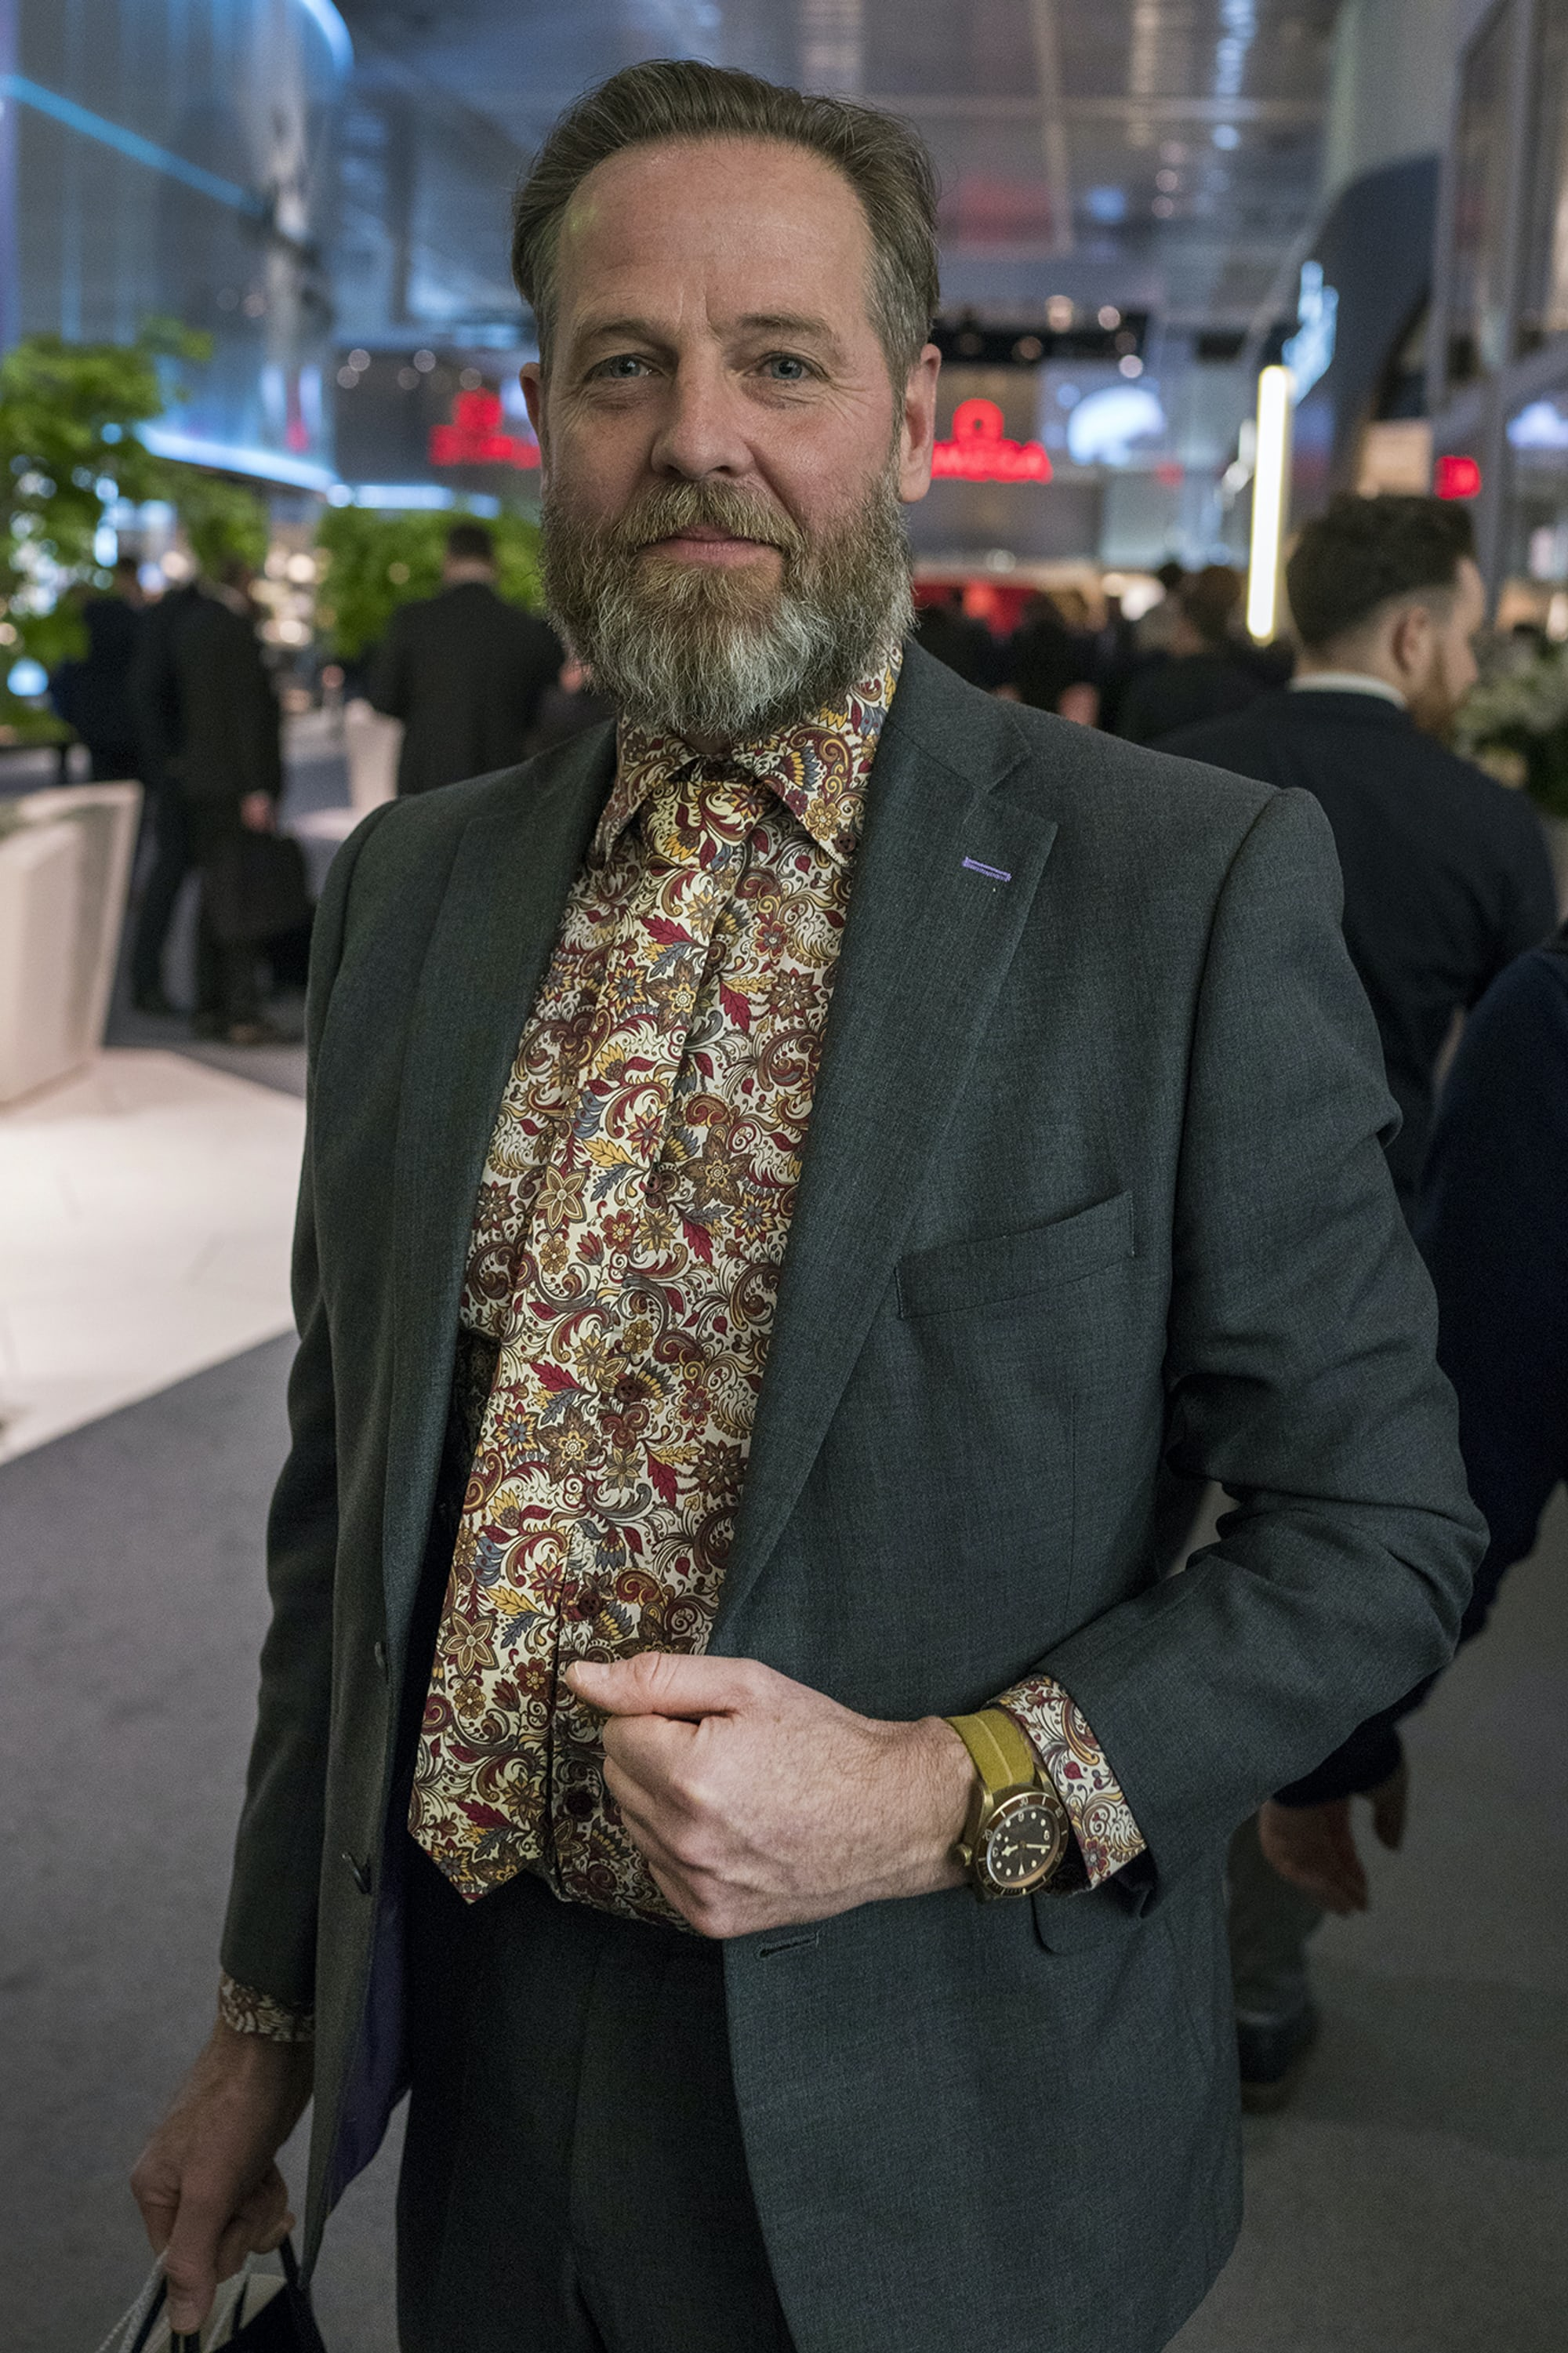 Photo Report: The Fashion And Watches Of Baselworld 2018 Photo Report: The Fashion And Watches Of Baselworld 2018 DSC00706 copy